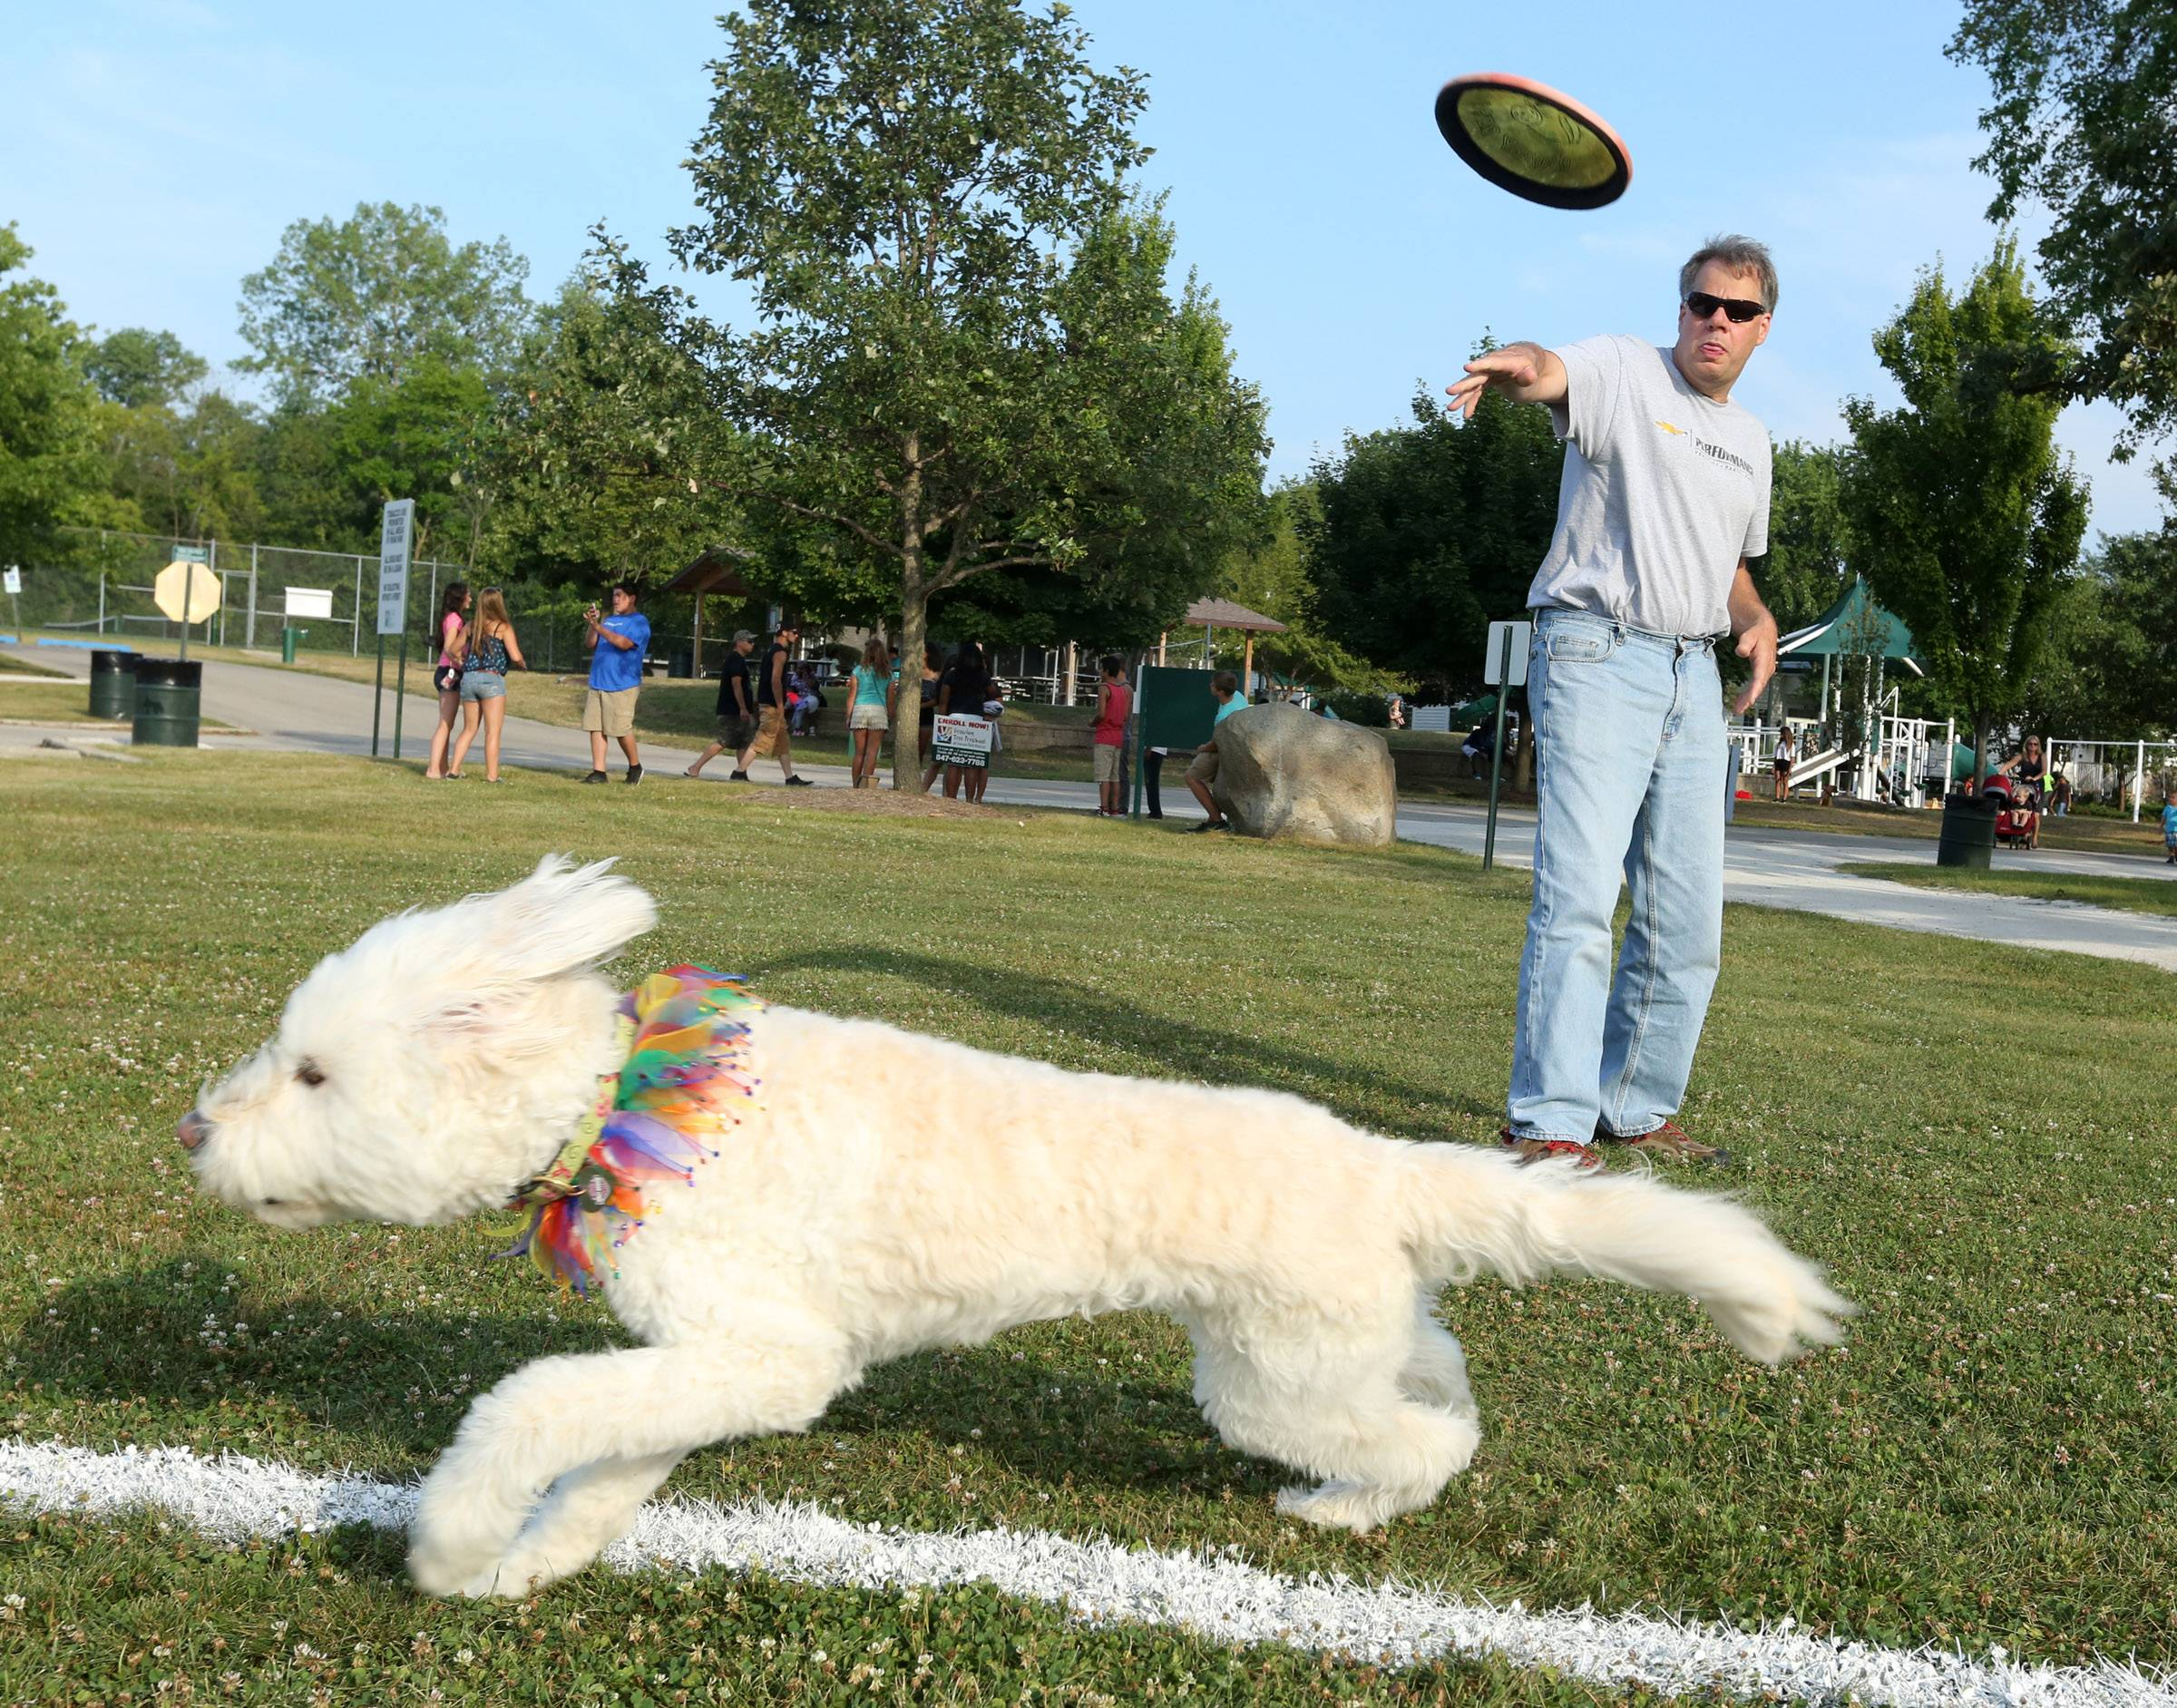 Bill Hemrich of Gurnee tosses a disc for his 9-year-old golden doodle, Lucy, to catch while warming up for the dog Frisbee championships Friday at the second day of Gurnee Days.